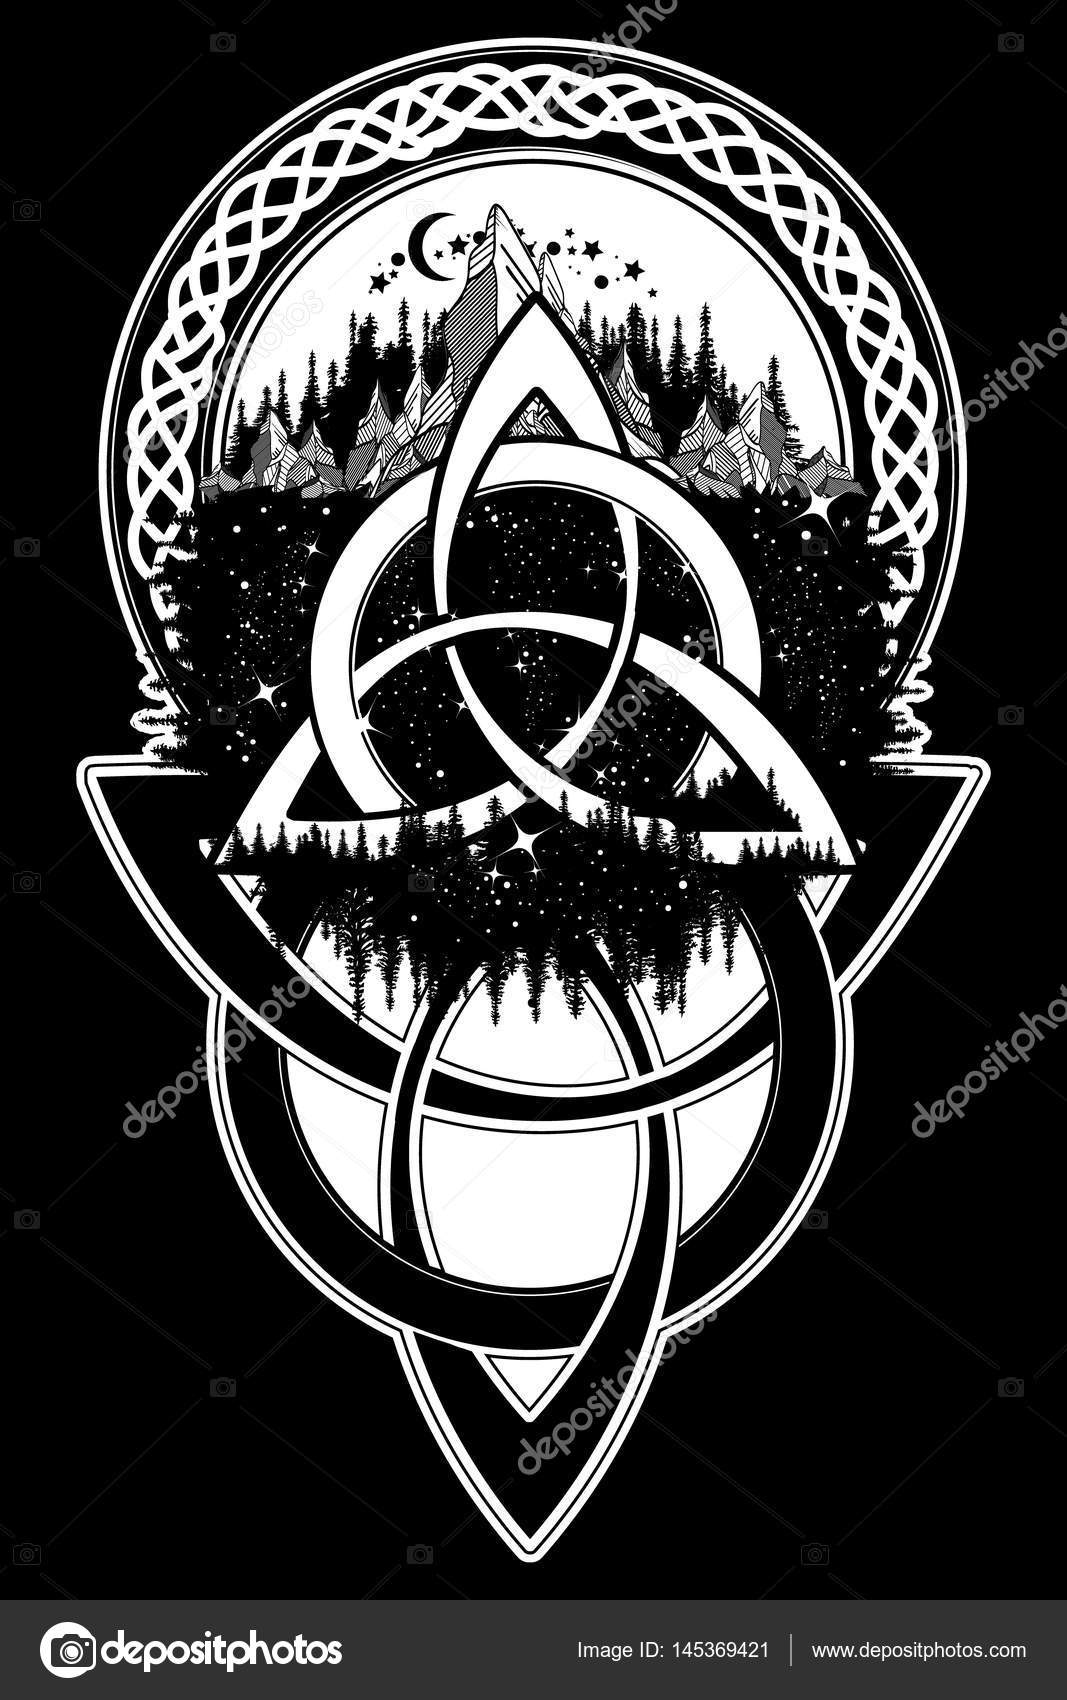 Celtic Knot Tattoo Mountain Forest Symbol Travel Symmetry